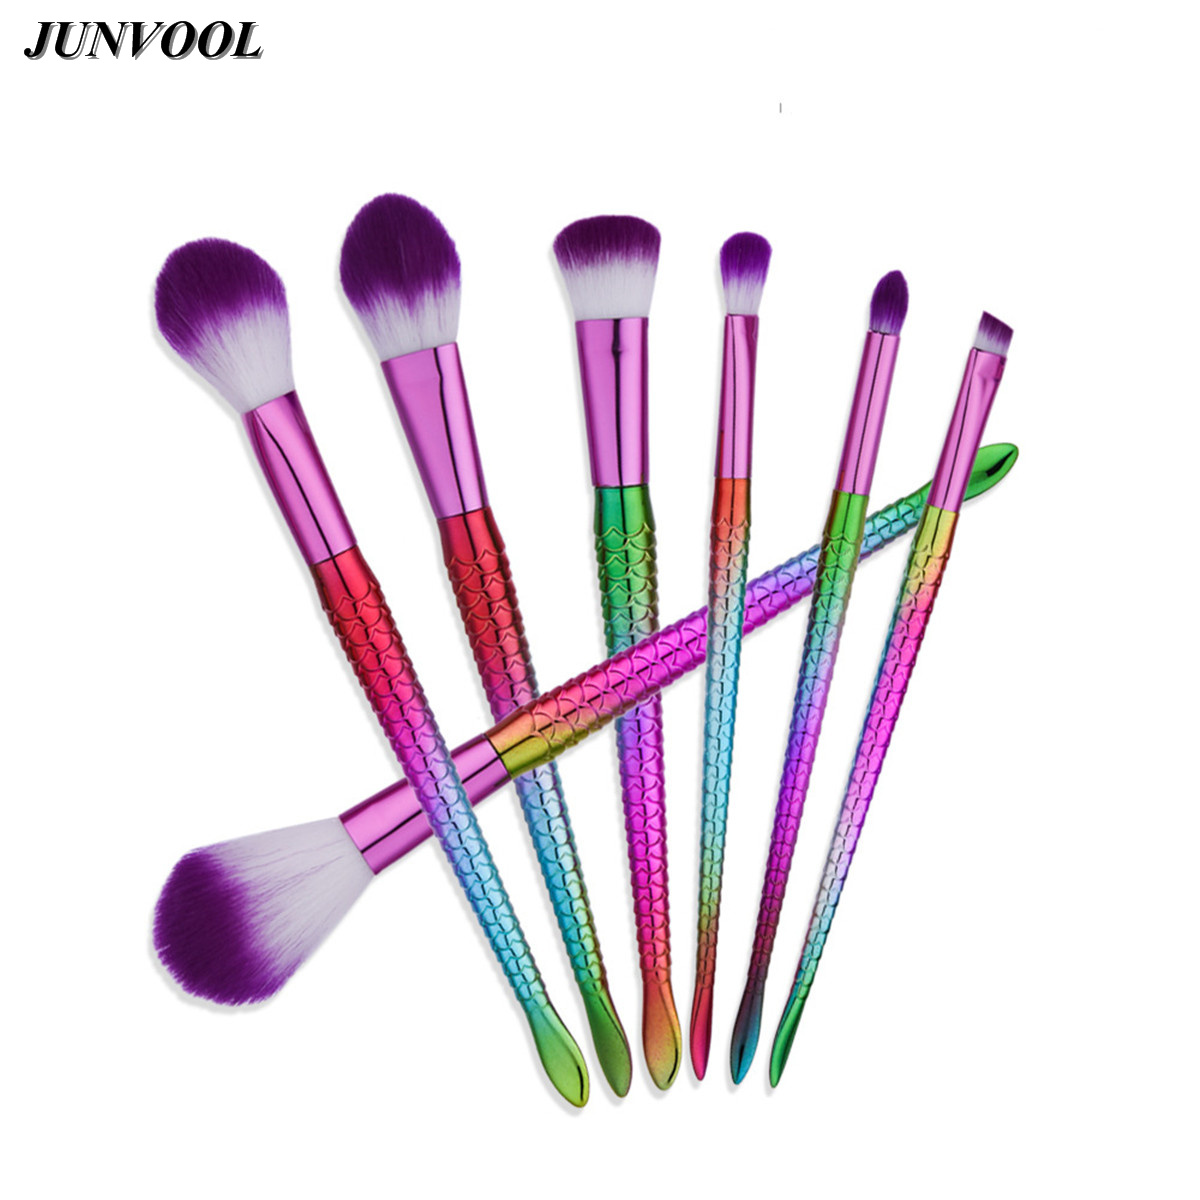 Mermaid Colorful Makeup Brushes Set 7pcs Powder Blusher Eyeliner Eyebrow Face Brush Soft Purple Hair Cosmetic Beauty Tools Kit free shipping 3 pp eyeliner liquid empty pipe pointed thin liquid eyeliner colour makeup tools lfrosted purple